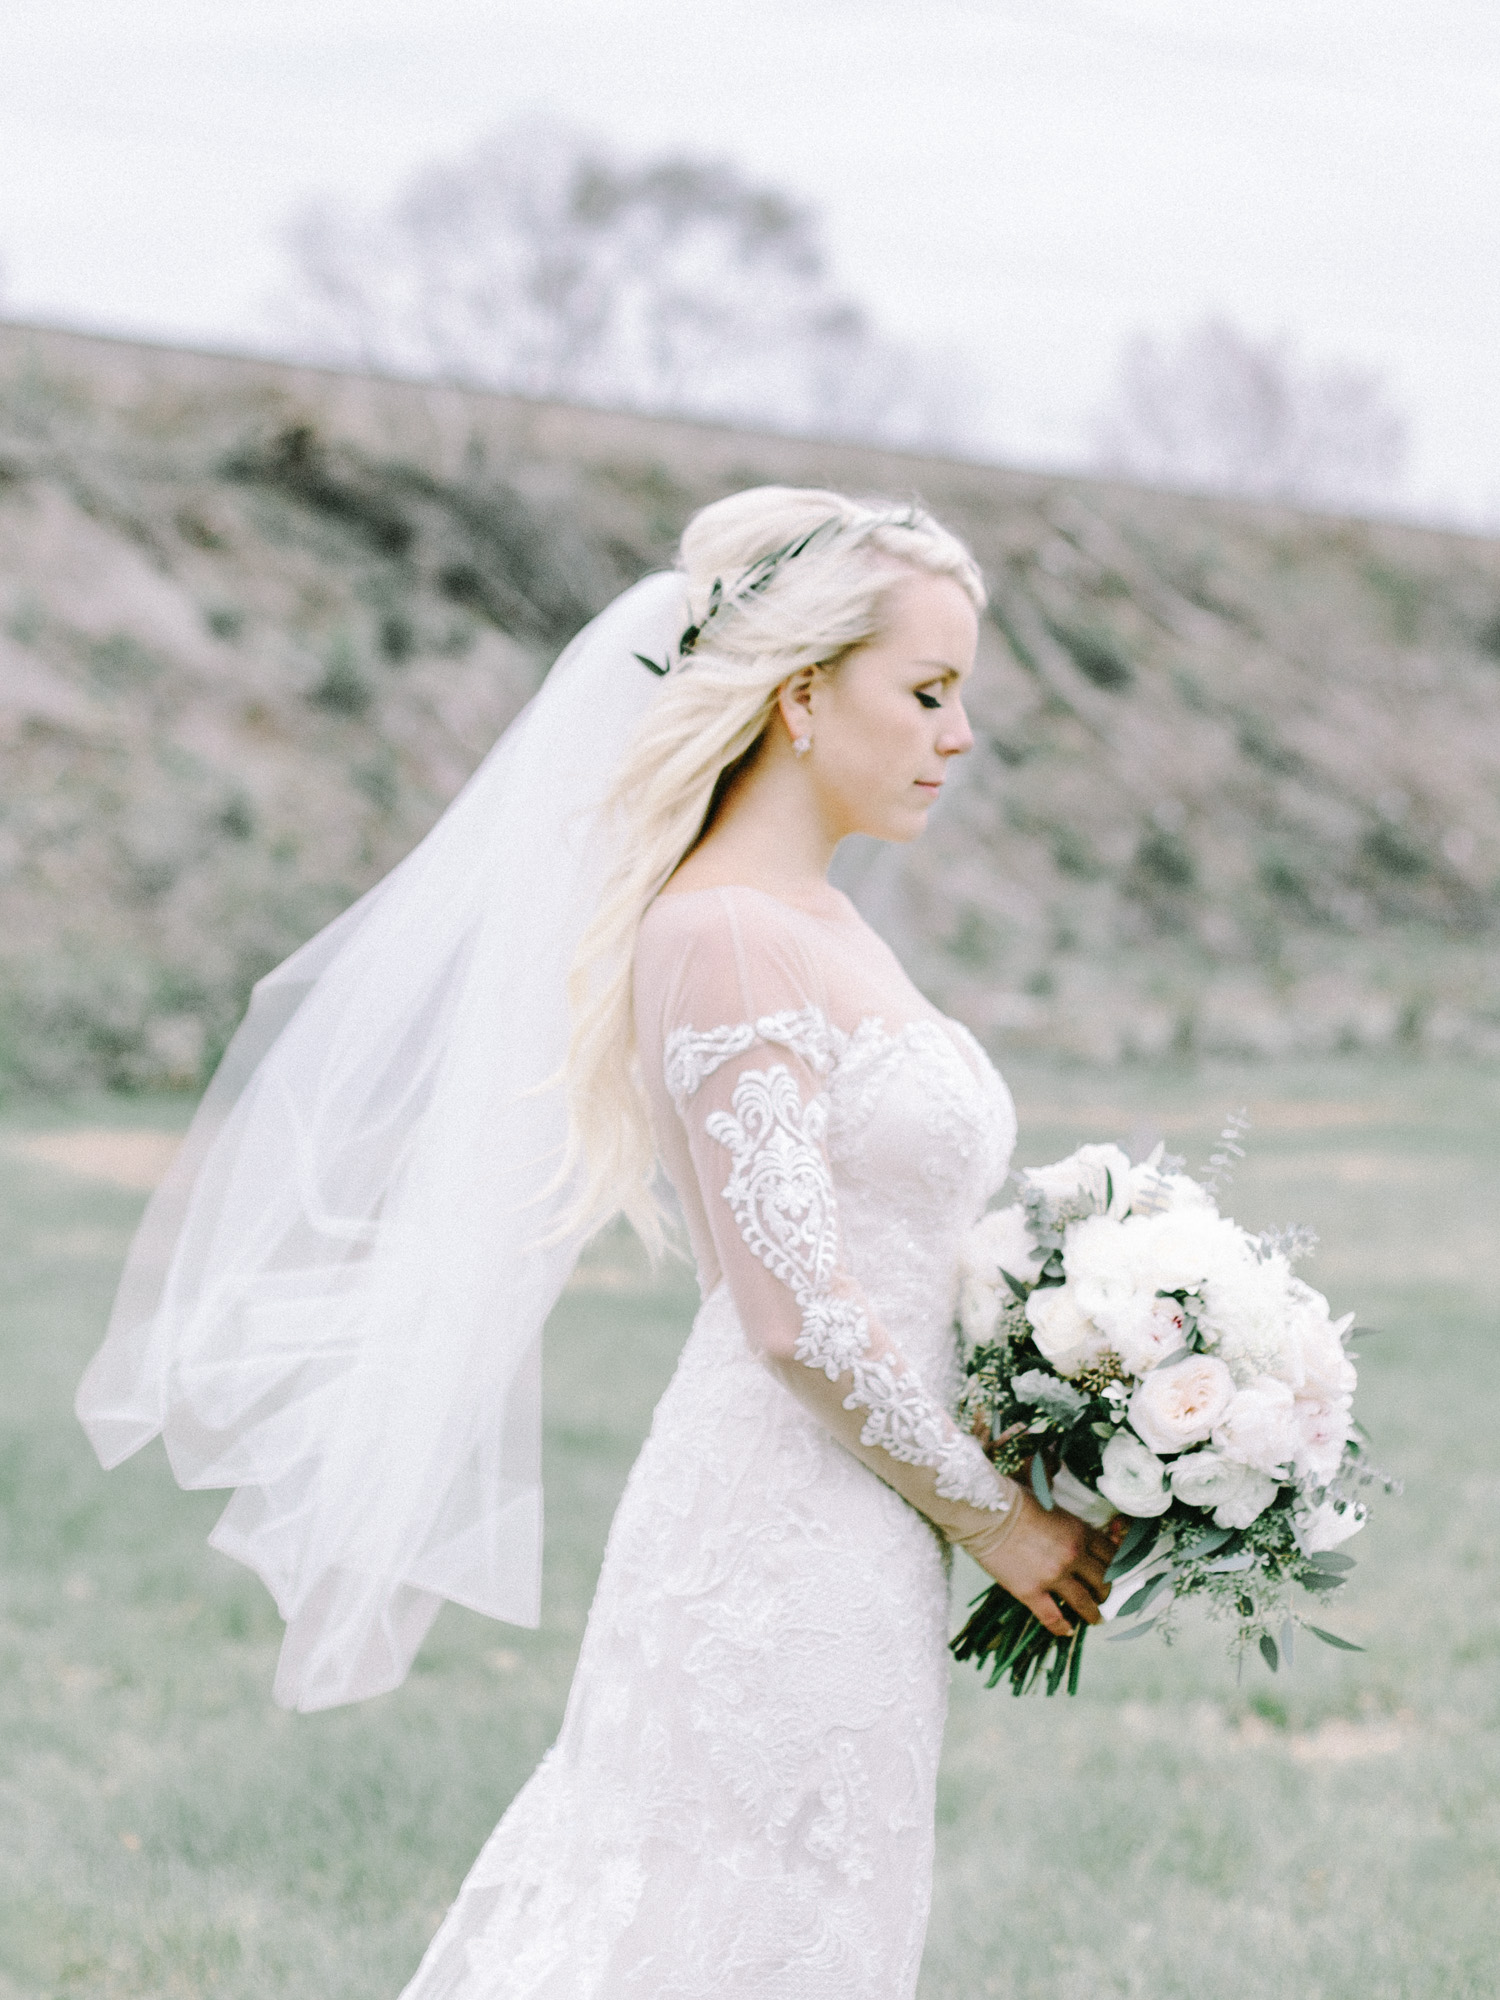 A bride's mid-length veil blows in the wind as she holds her bouquet at her Indiana wedding venue, The Brick